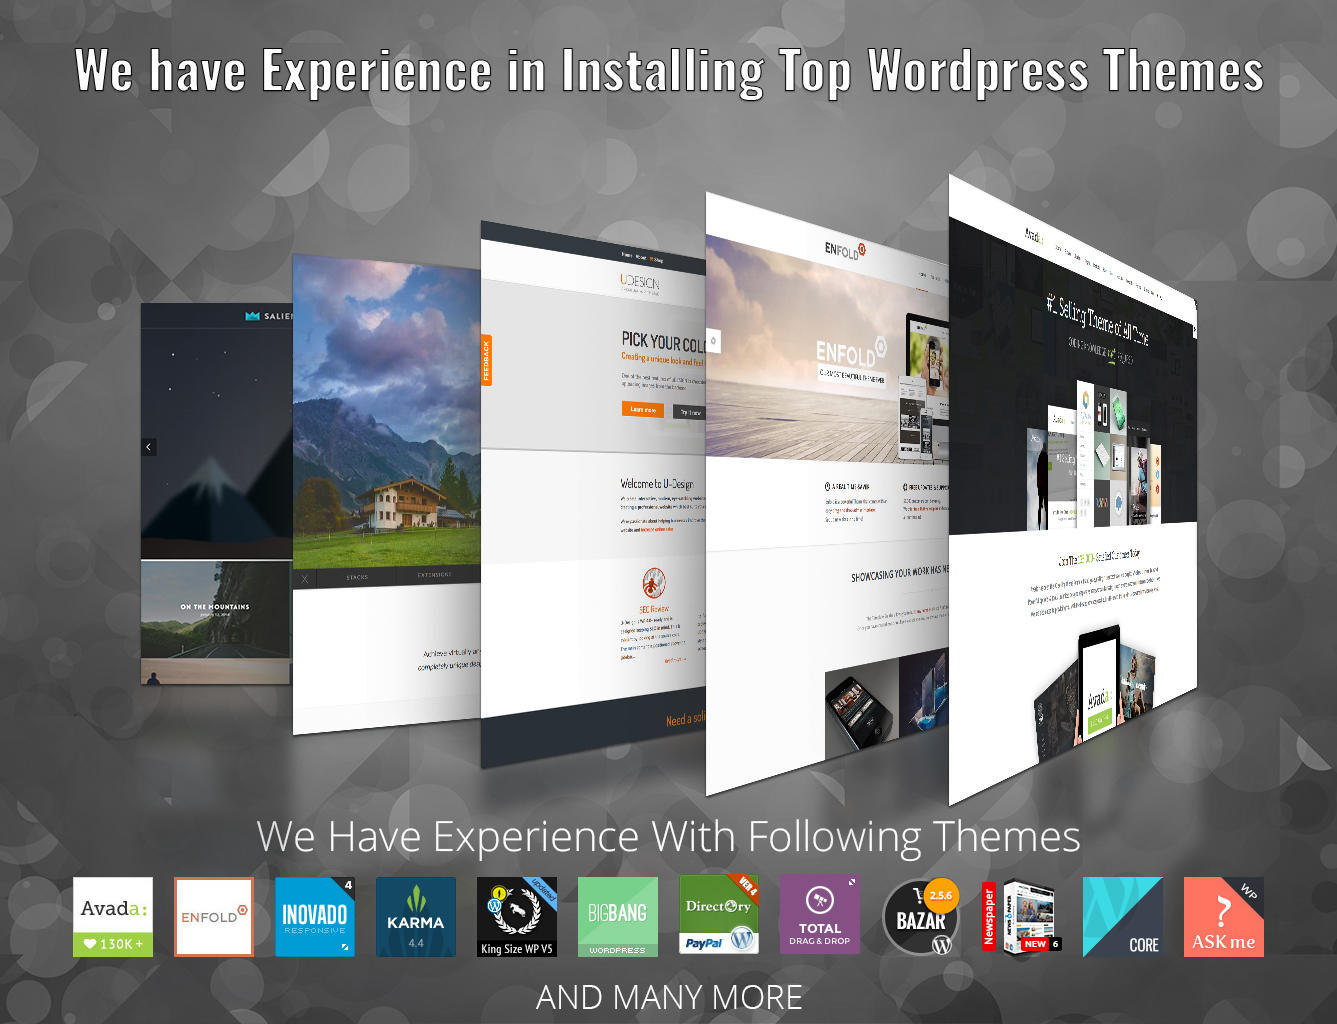 Expert Wordpress Theme Installation (Install Theme,Import Demo Content,Add Logo) by snilesh - 82405